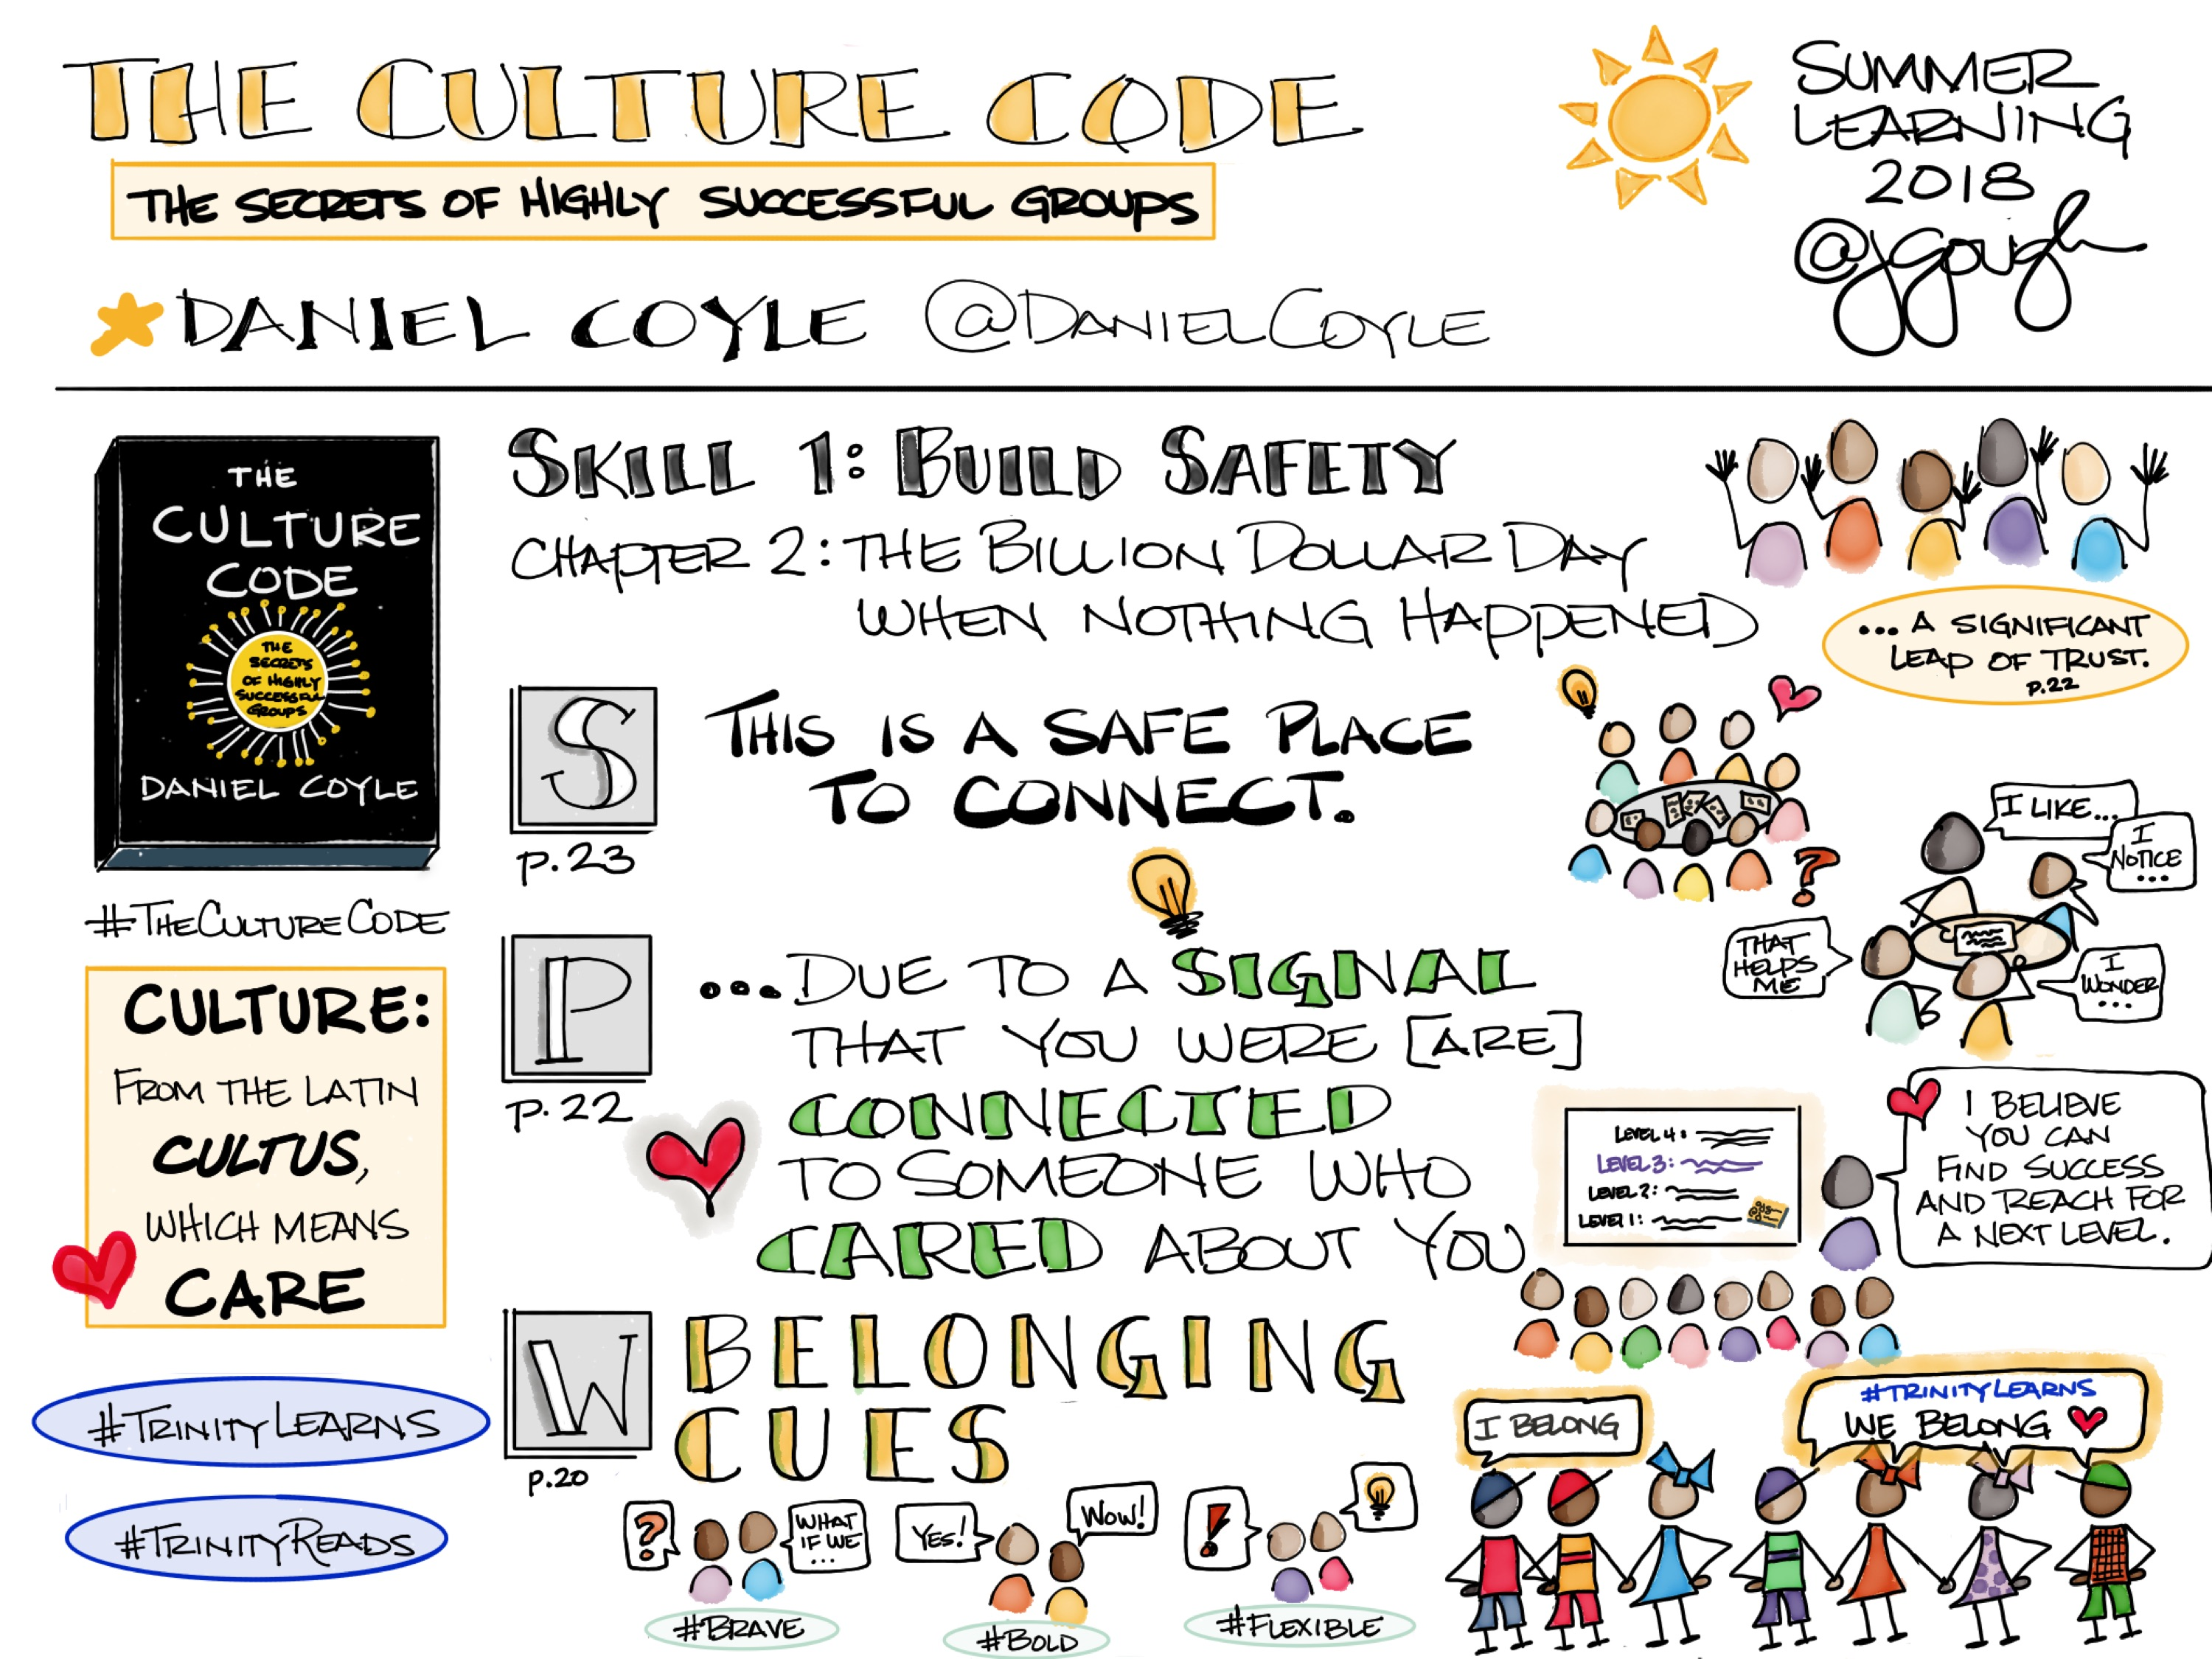 #TheCultureCode by @DanielCoyle – Skill 1 Build Safety, Chapter 2 The Billion Dollar Day When Nothing Happened #TrinityLearns signals and belonging cues #TrinityReads